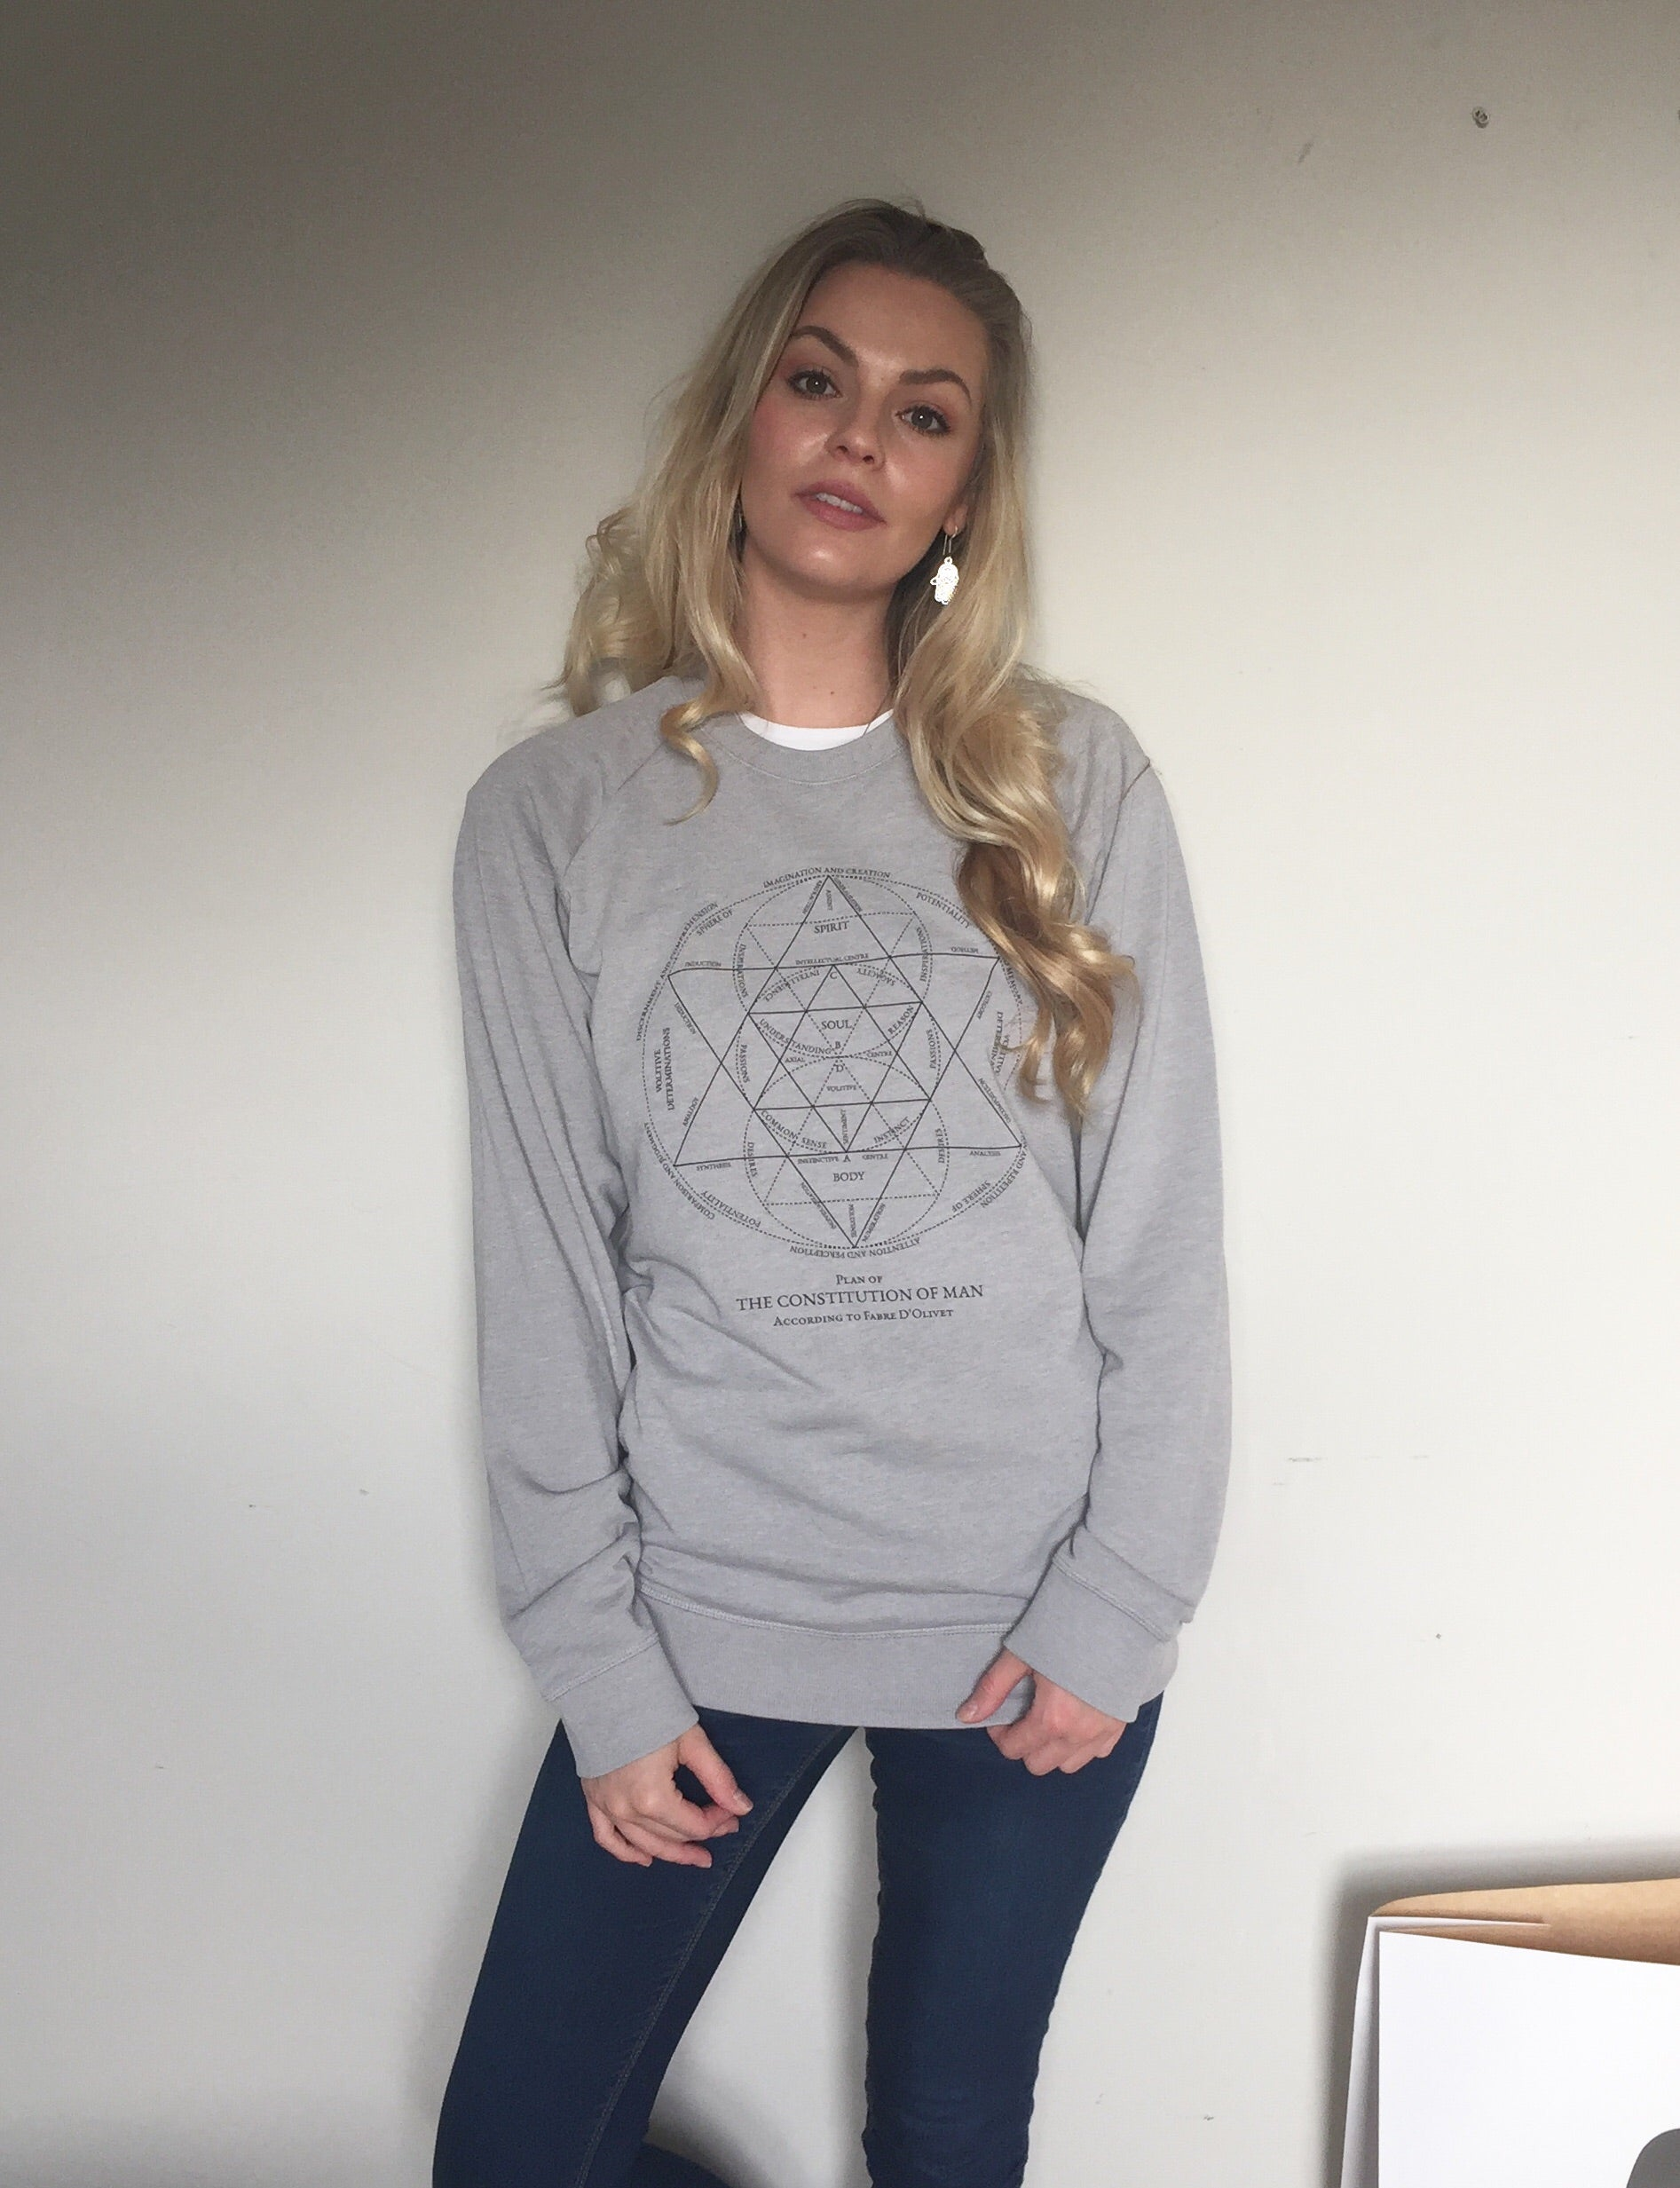 The Constitution of Man Grey Sweatshirt